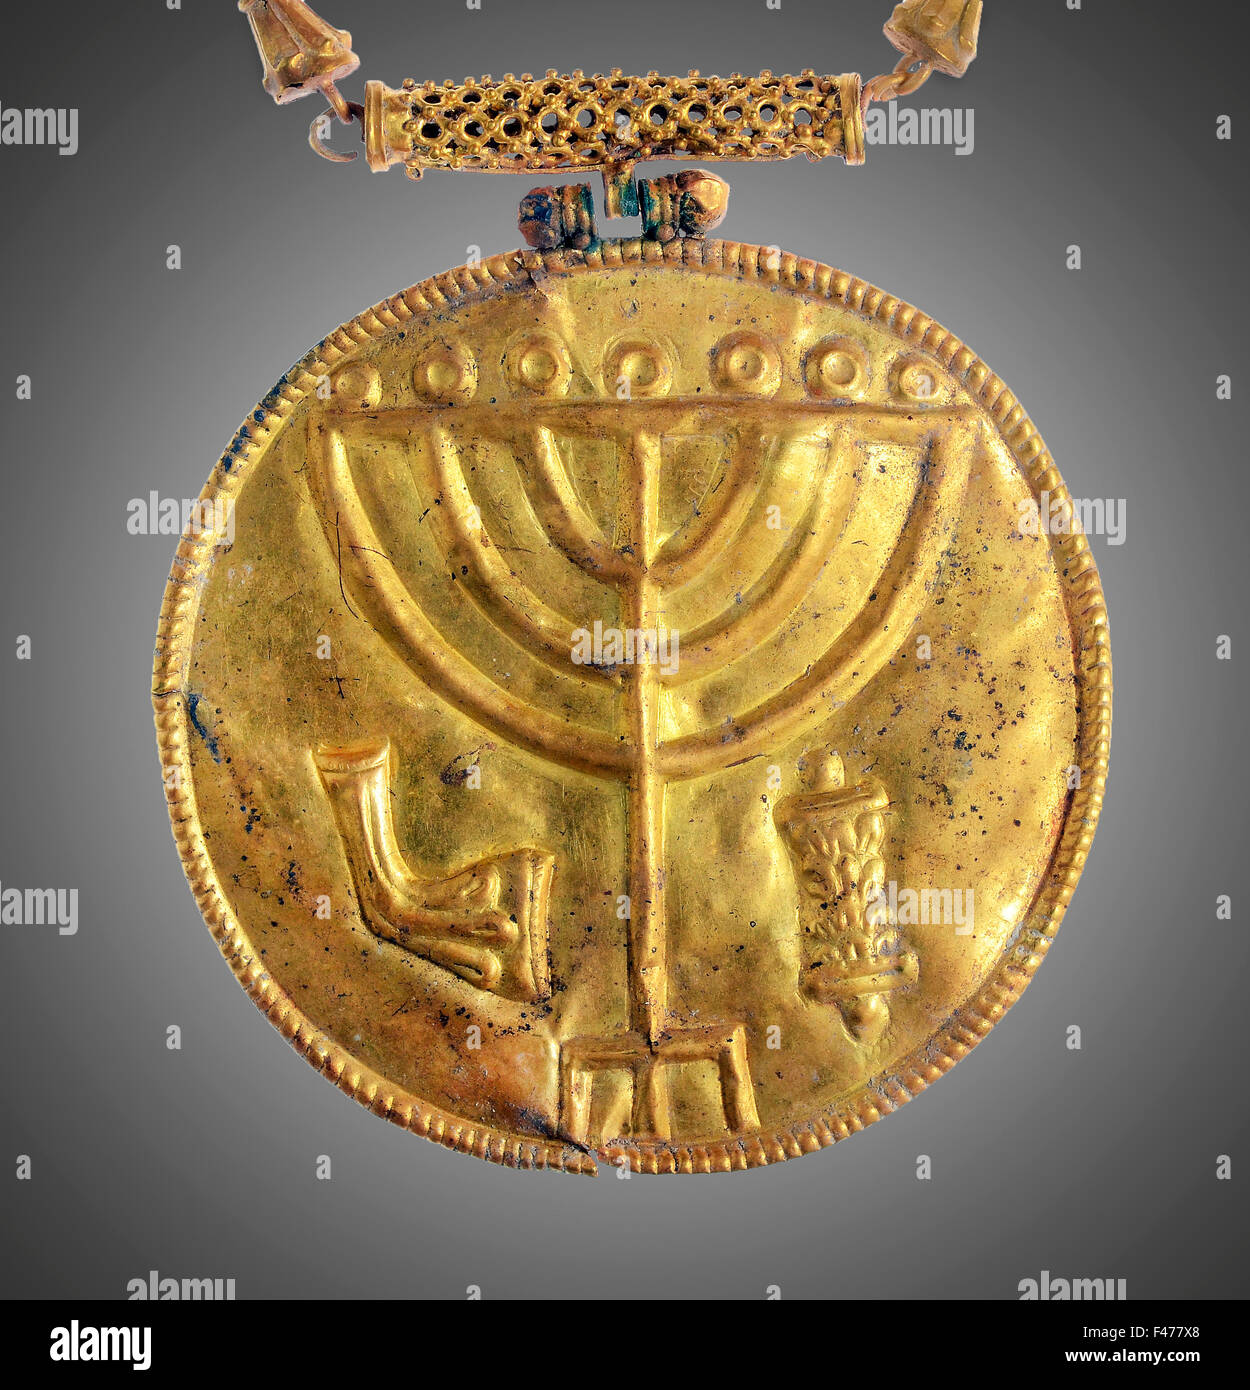 5812. Golden medallion decorated with a seven branched menorah (candelabra), a ram's horn and a Torah scroll. The - Stock Image